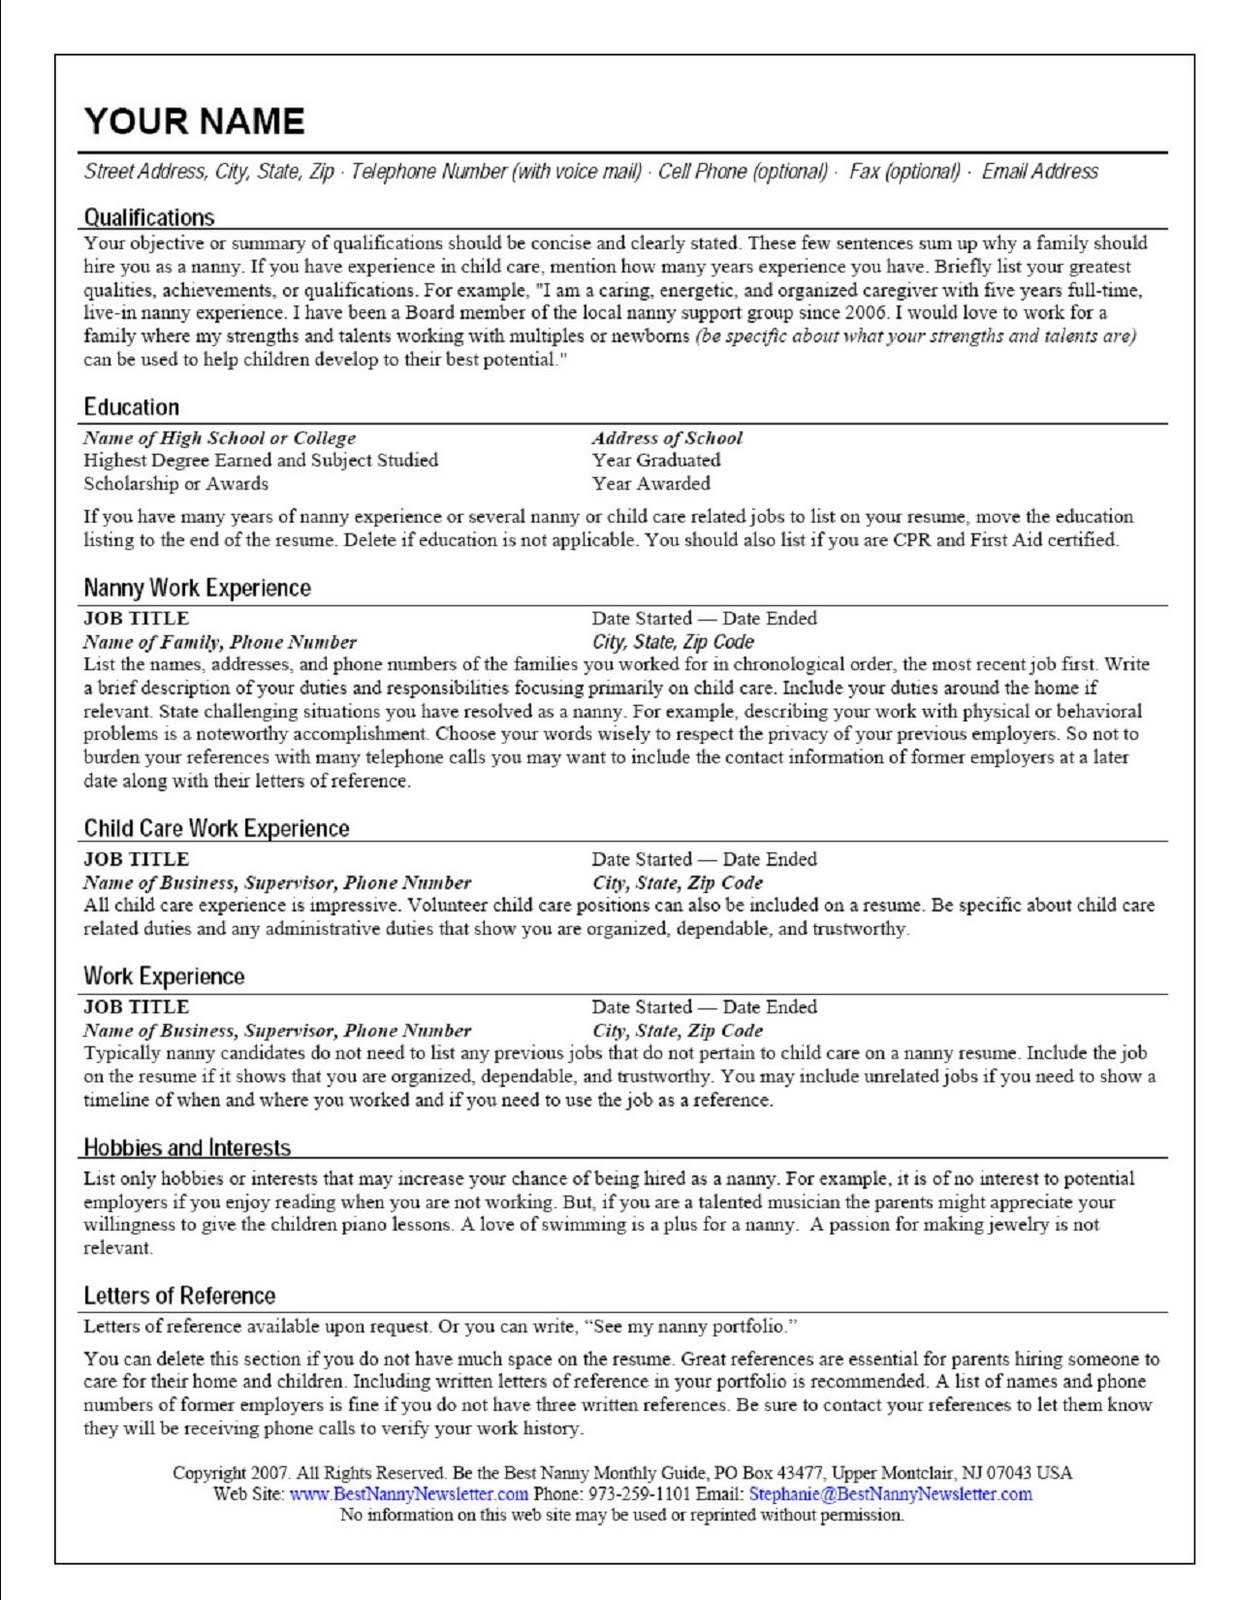 best medical caregiver resume example